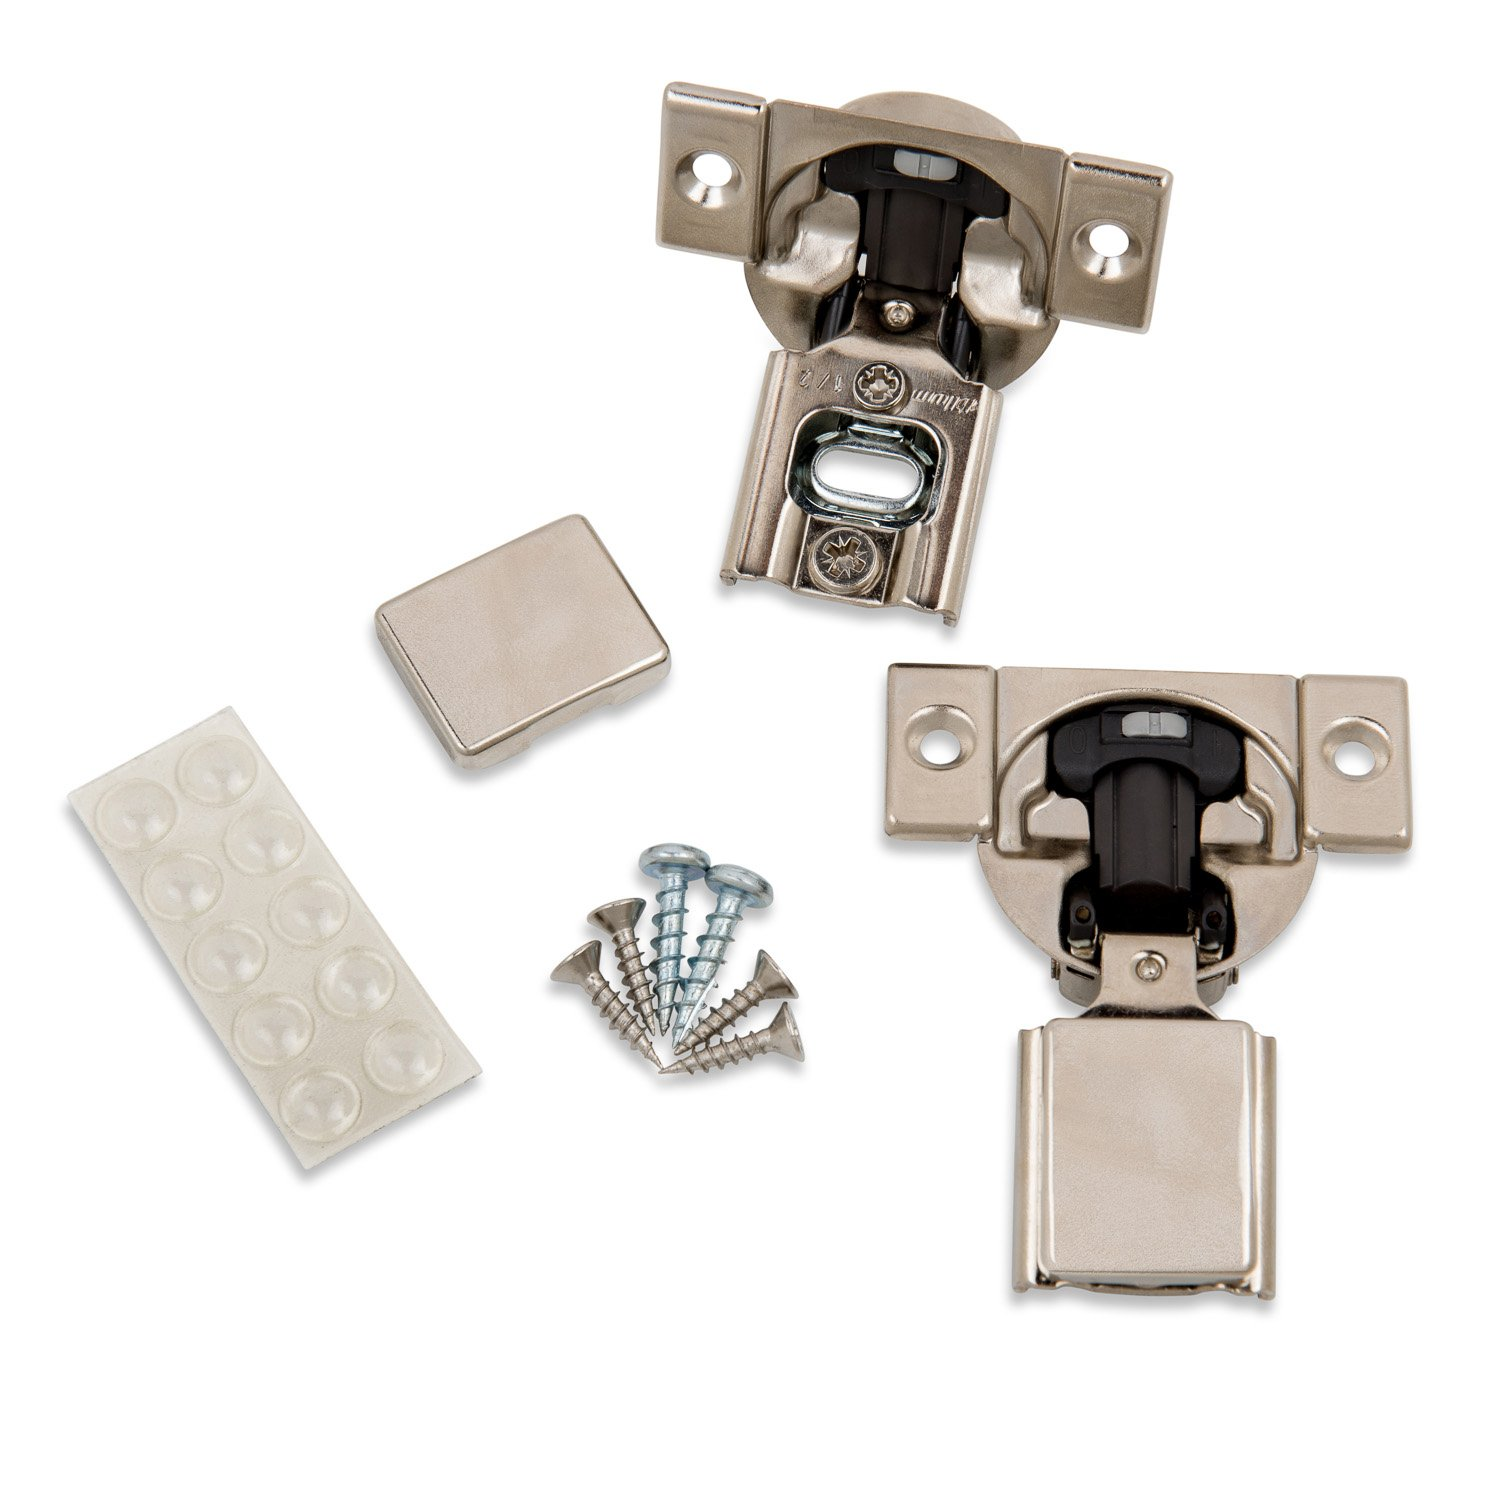 Blum (10 Pack) 1/2'' Overlay Soft Close Hinge 38N355B.08 105° Blumotion with Screws, Cover Caps, ProCabinetBumpers Bumpers